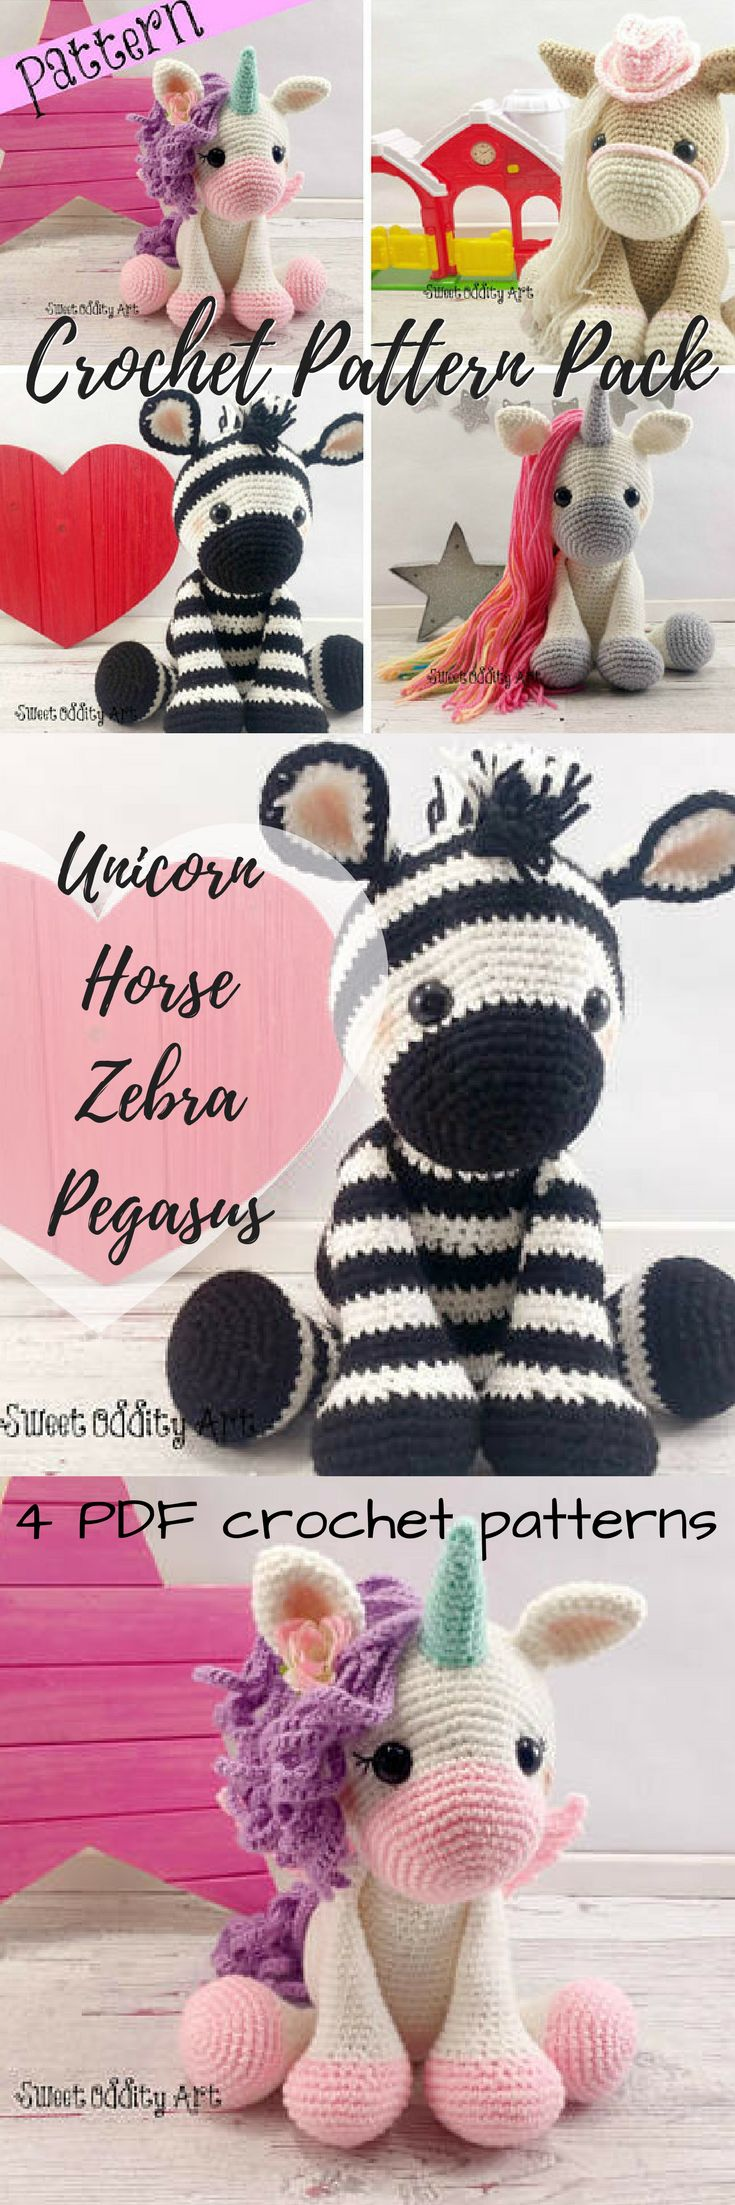 Four super cute crochet amigurumi patterns in one! Lovely little horse, unicorn, Pegasus and zebra crochet patterns for these adorable toys! #etsy #ad #amigurumi